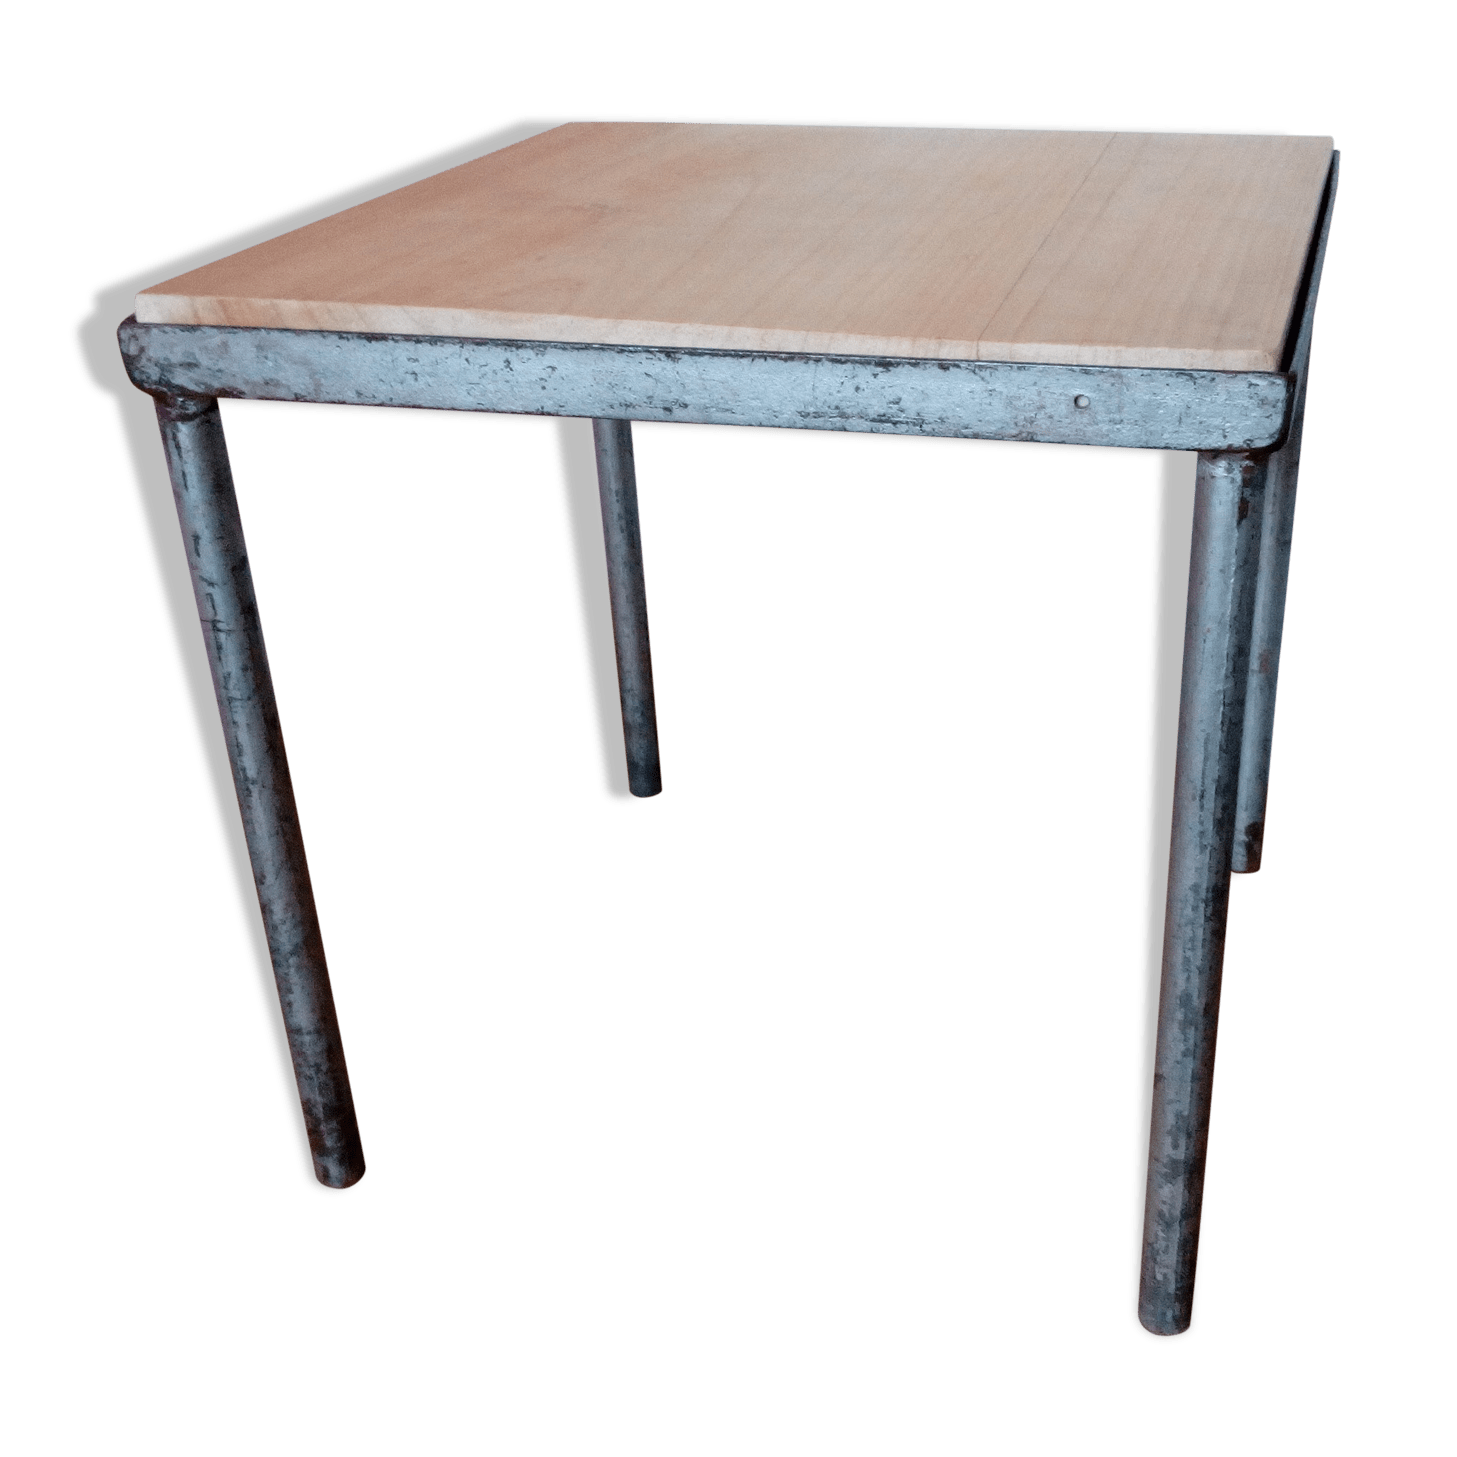 Table Bois Carré Table Carre Style Industriel Amazing Ordinaire Table